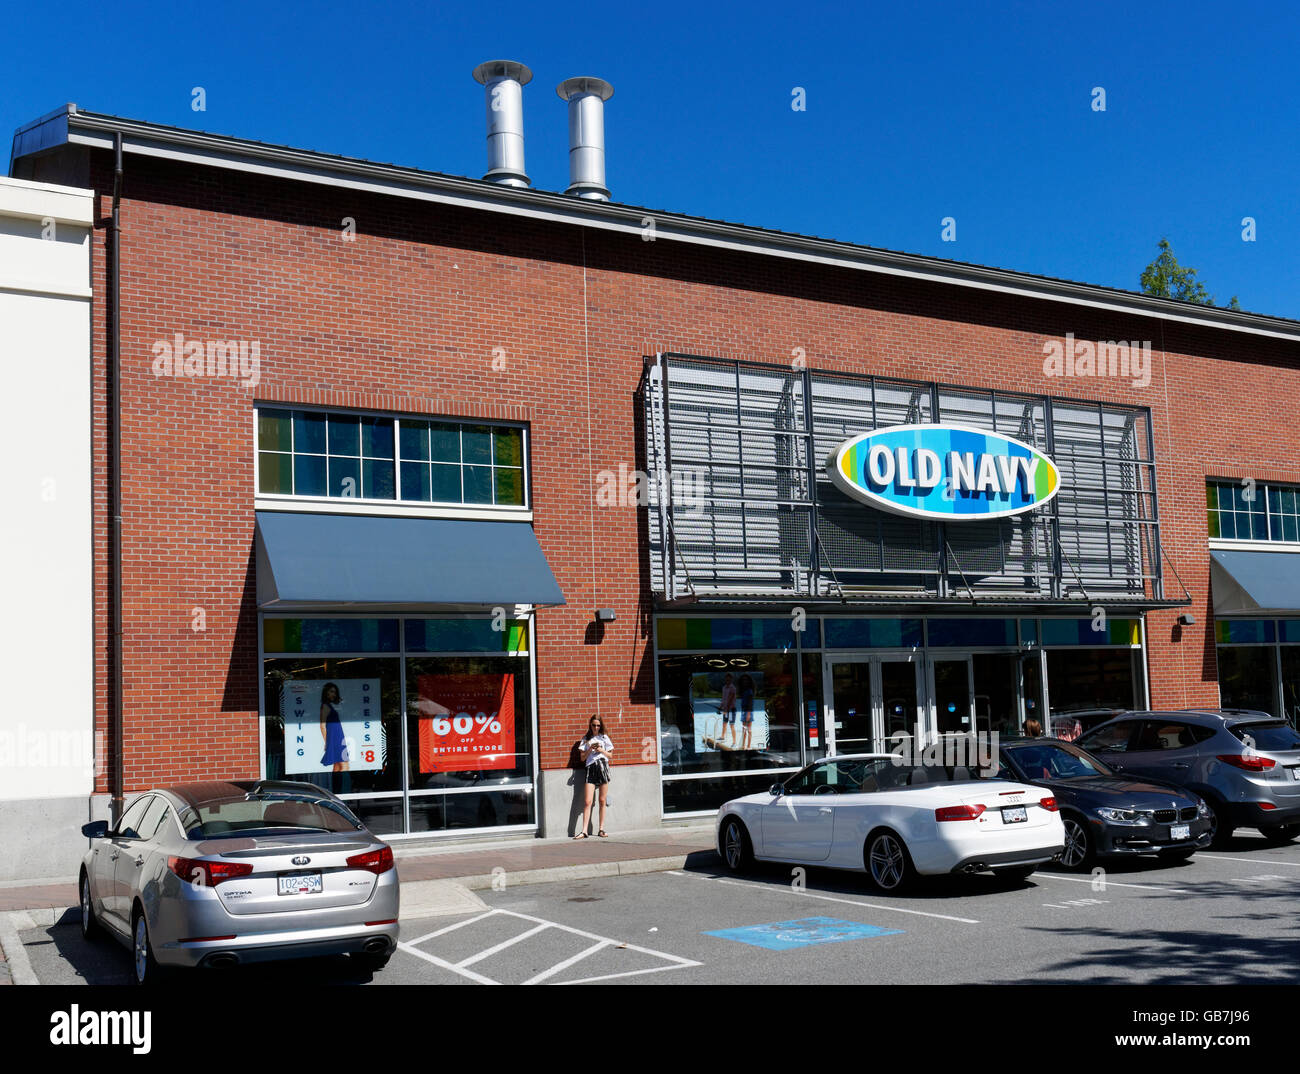 Old Navy Clothing Store At The Village Park Royal Shopping Center West Vancouver British Columbia Canada